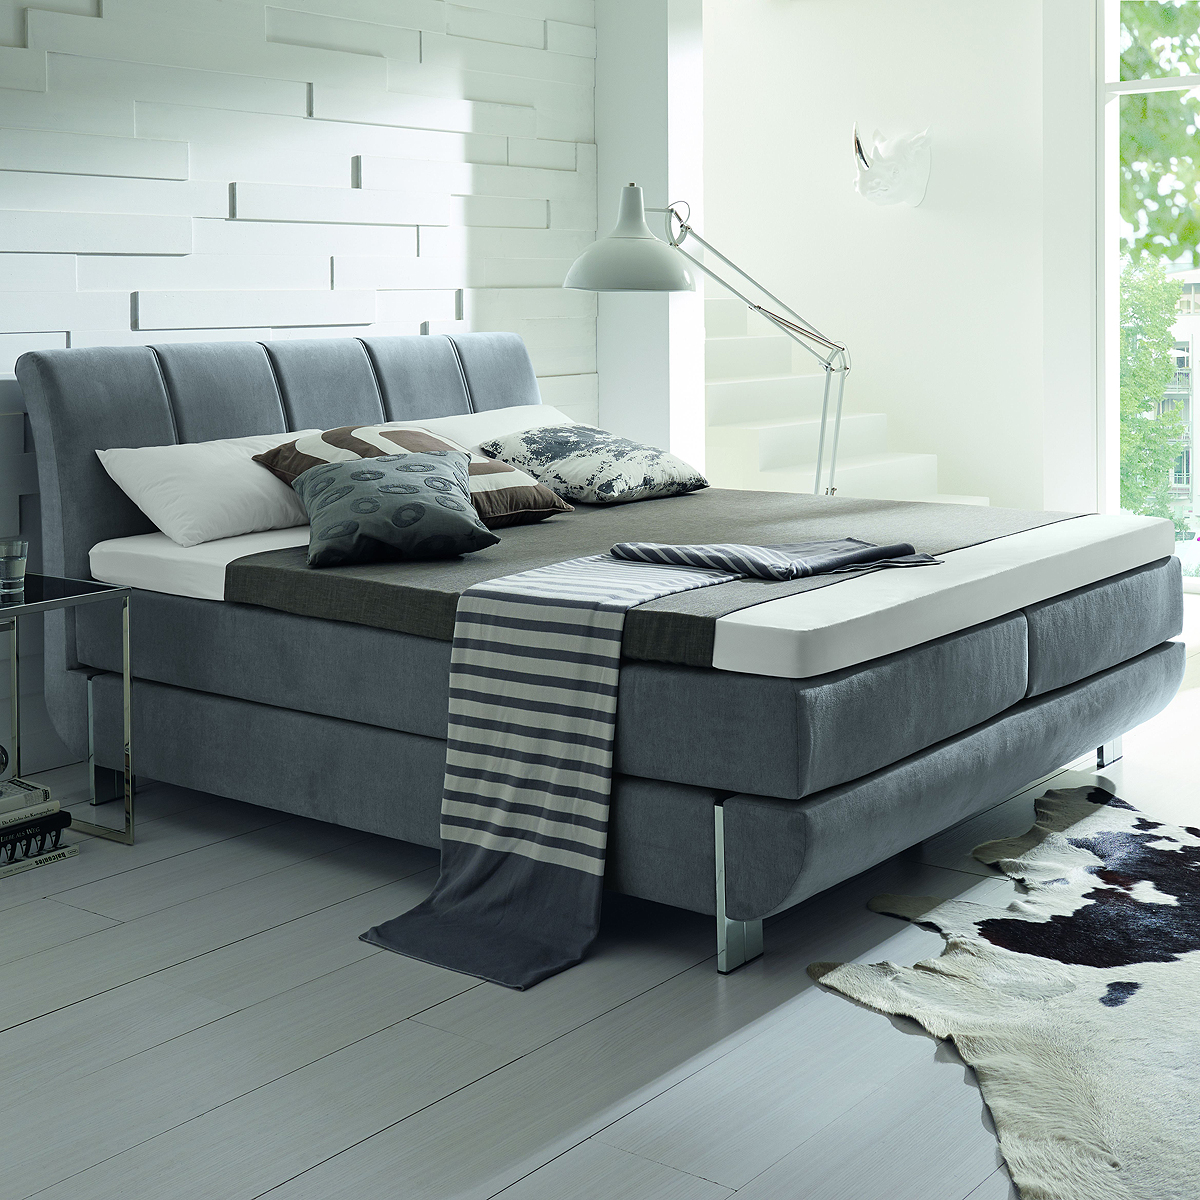 boxspringbett ronda bett hellgrau mit silvercare topper 7 zonen matratze 180x200 ebay. Black Bedroom Furniture Sets. Home Design Ideas